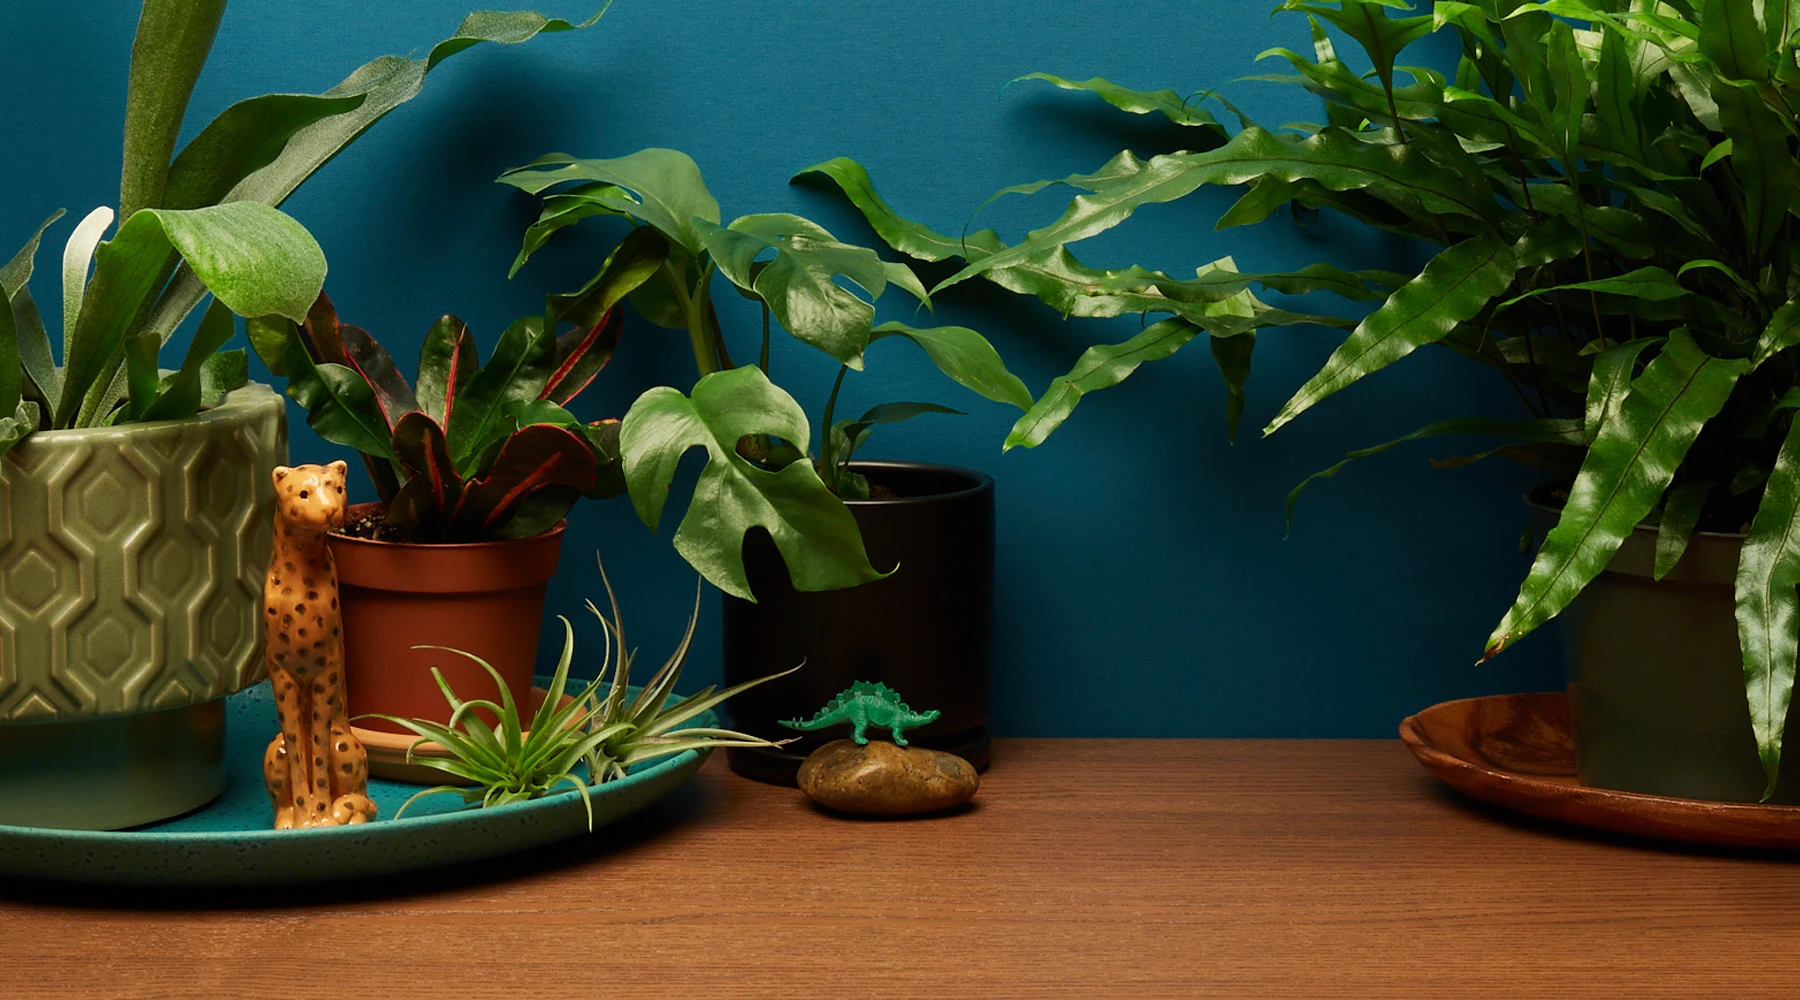 This Valentine's day give Houseplants instead of flowers.